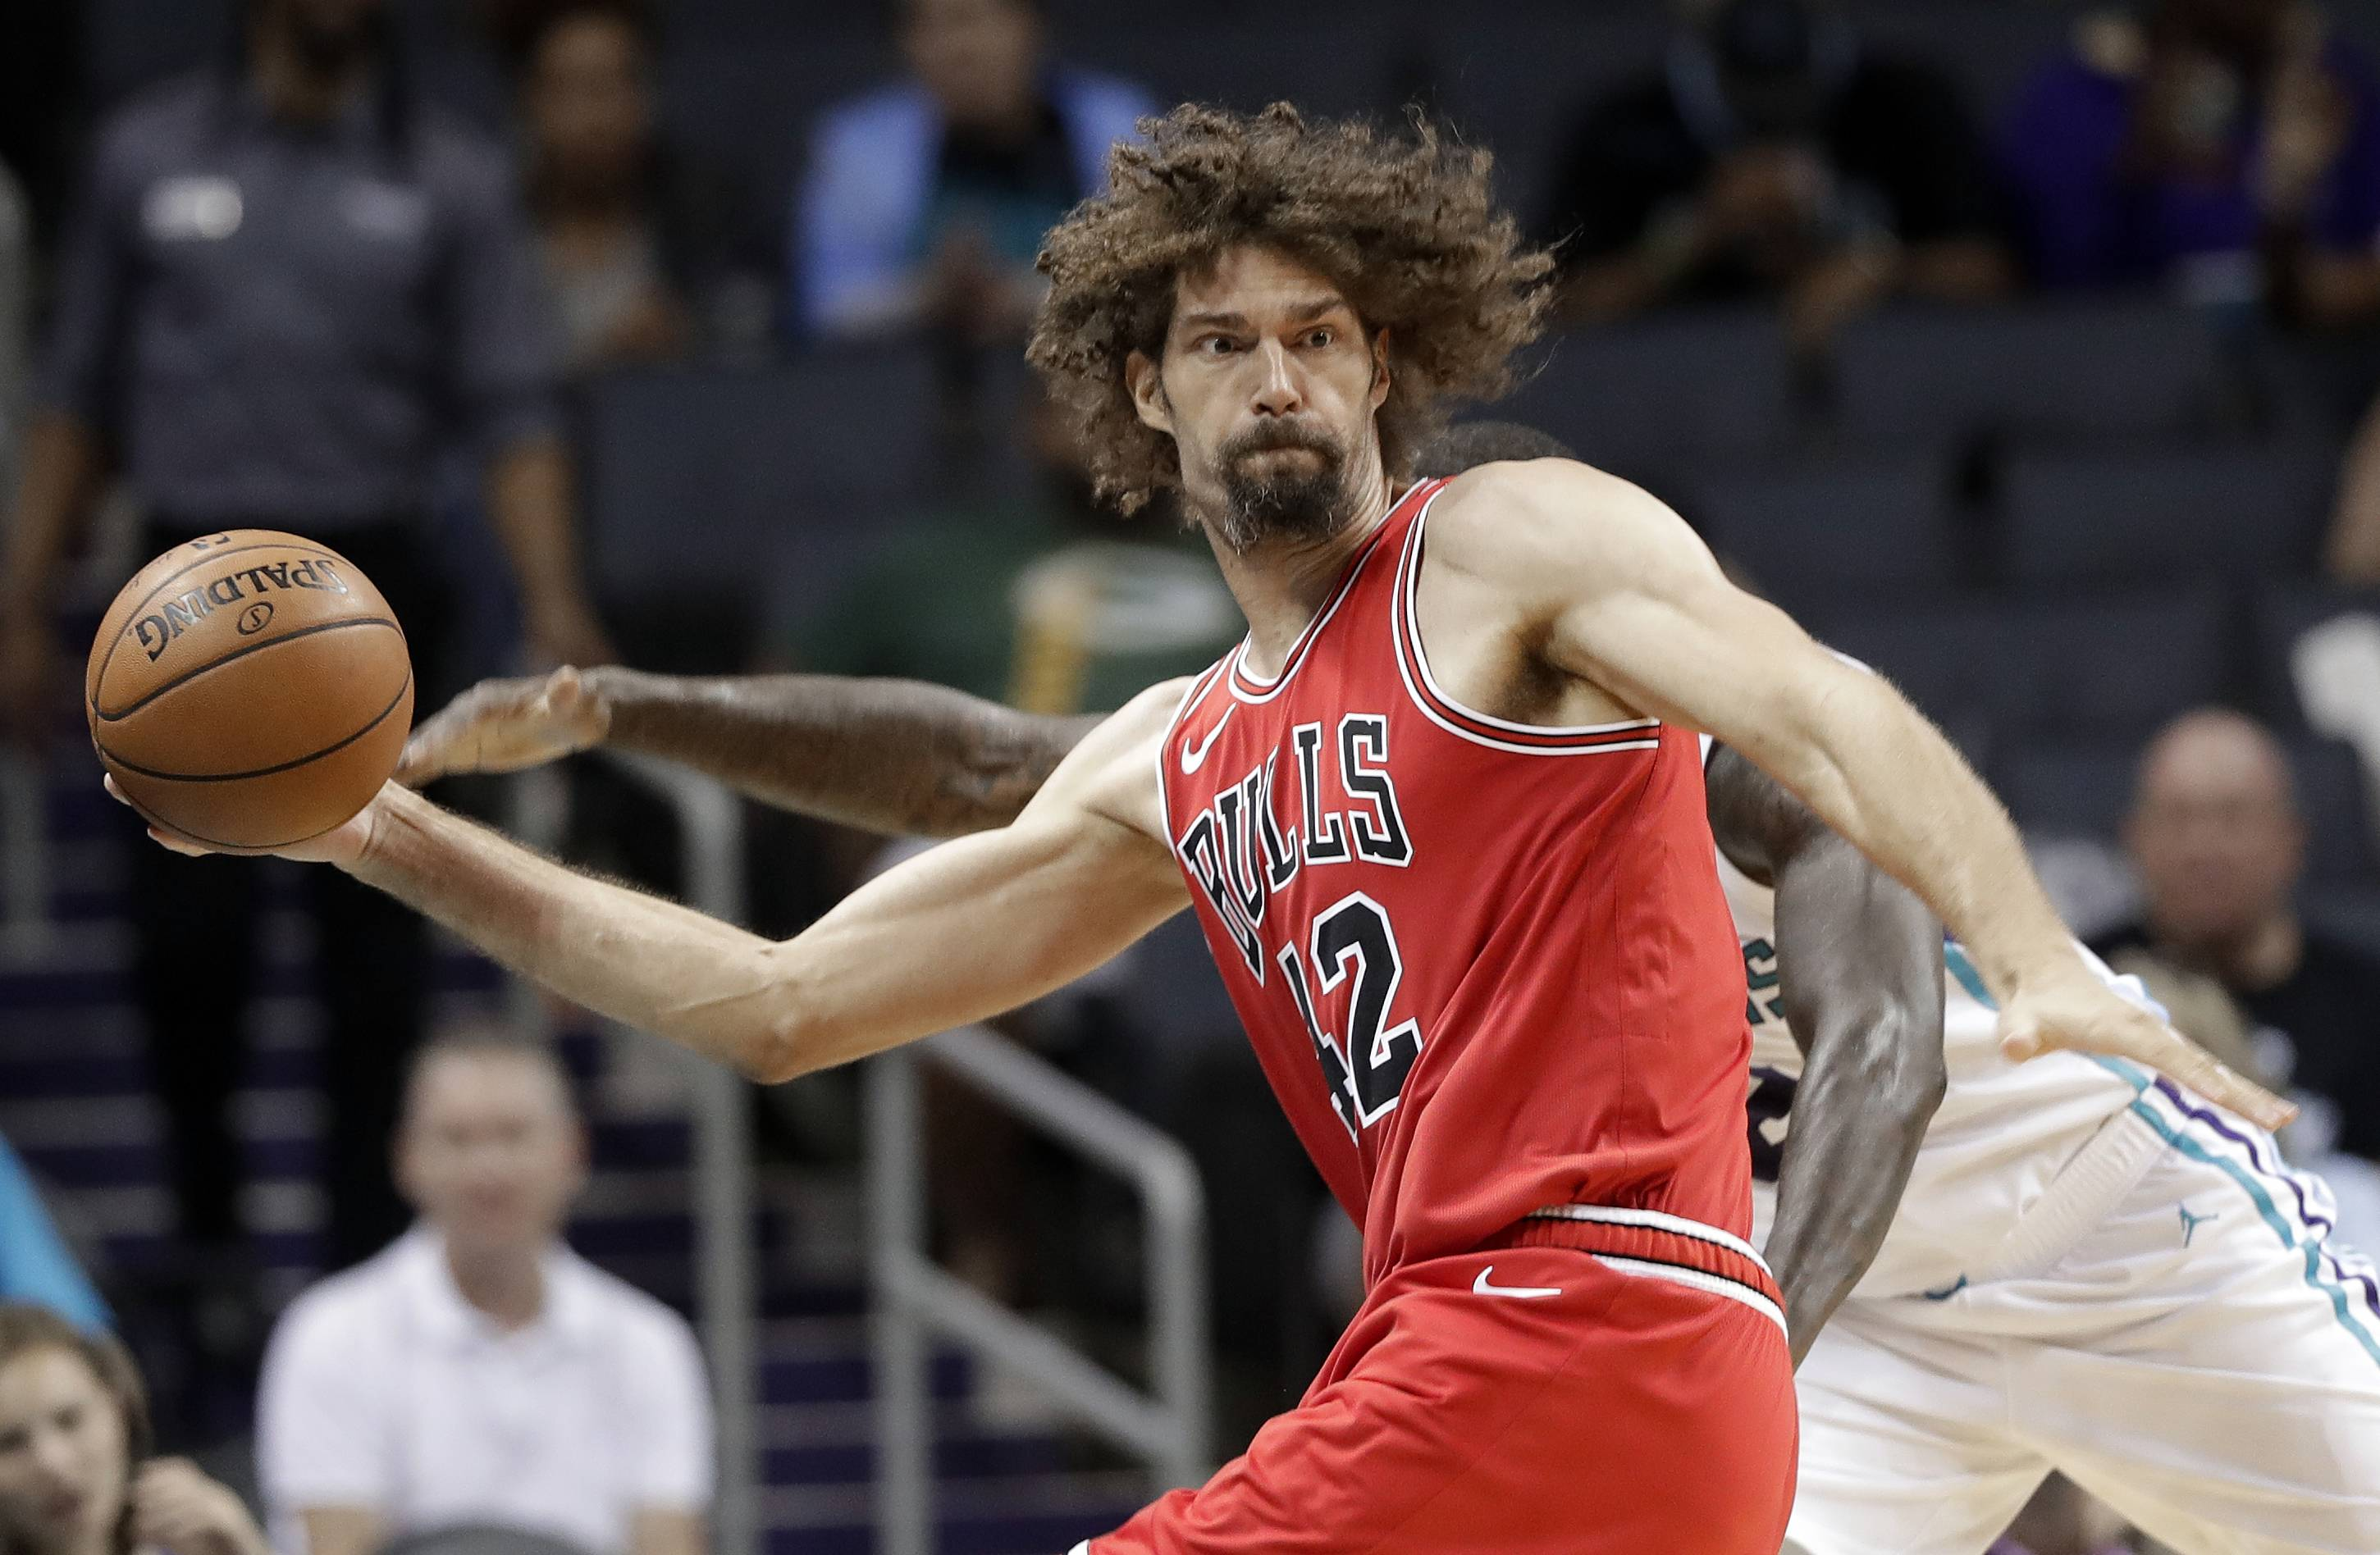 Chicago Bulls' Robin Lopez (42) looks to pass the ball against the Charlotte Hornets in the second half of a preseason NBA basketball game in Charlotte, N.C., Monday, Oct. 8, 2018. (AP Photo/Chuck Burton)